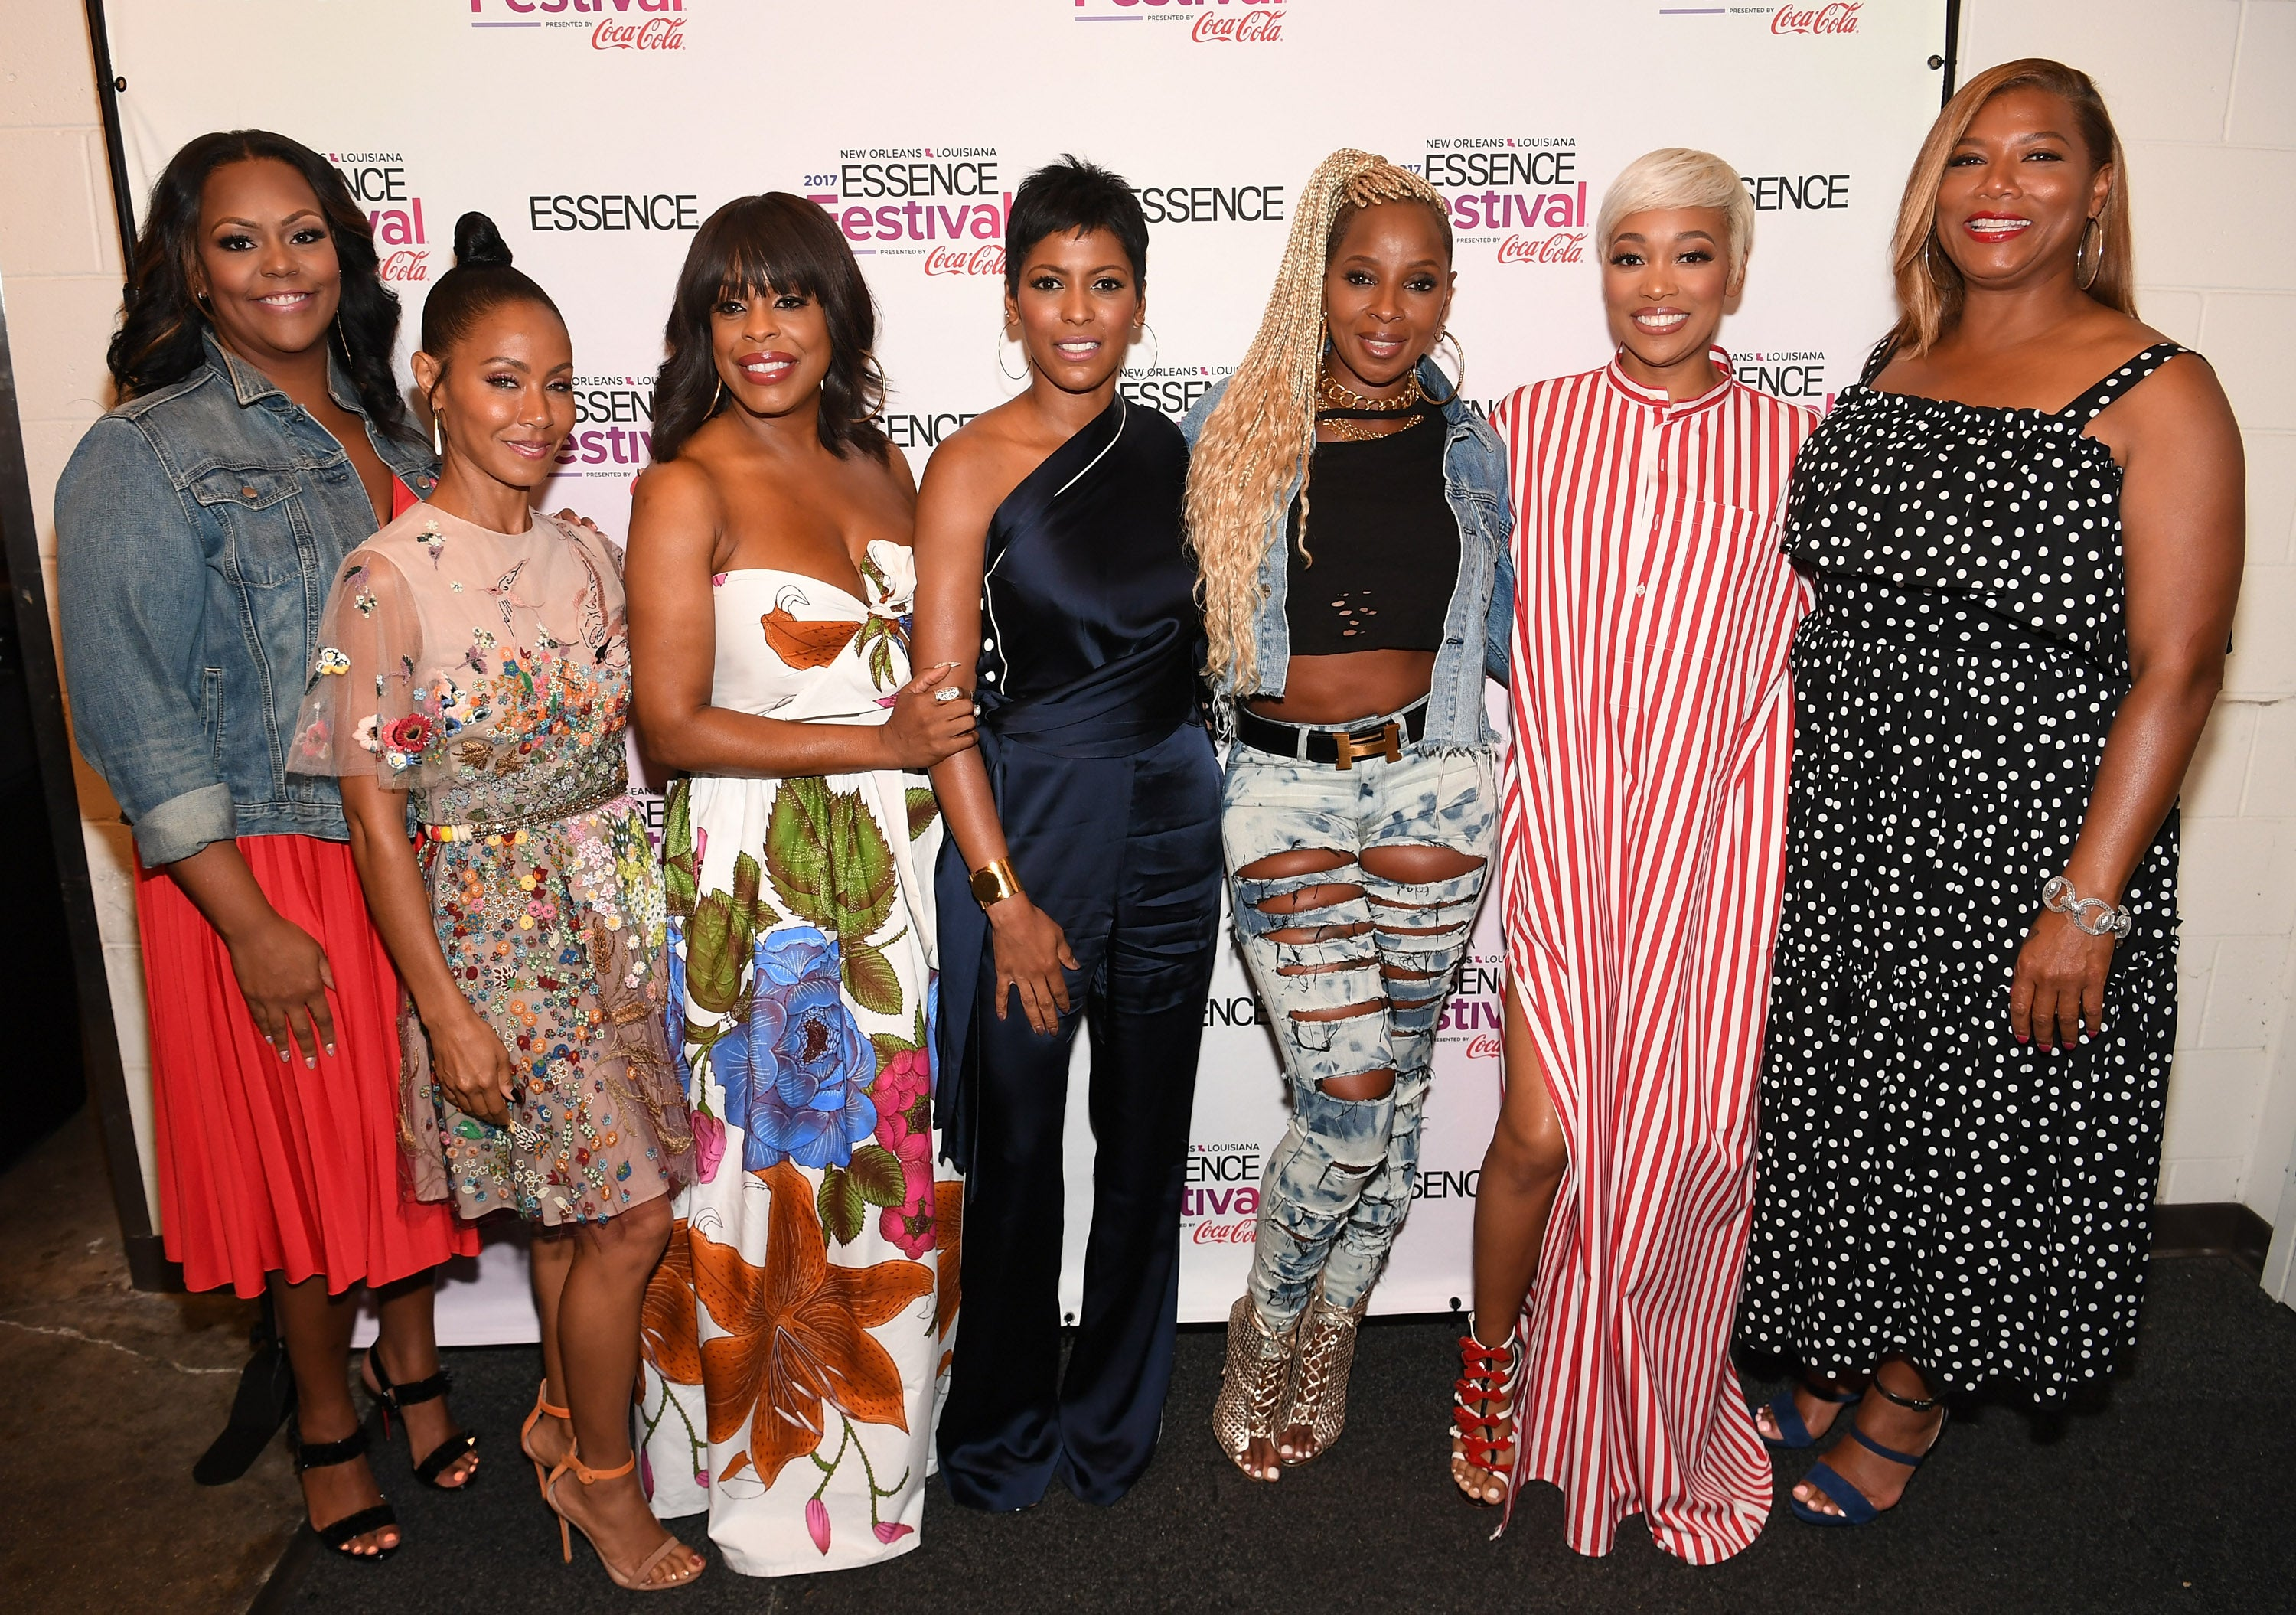 Jada Pinkett Smith, Niecy Nash, Monica And MoreShare The Advice They'd Give Their 15-Year-Old Selves